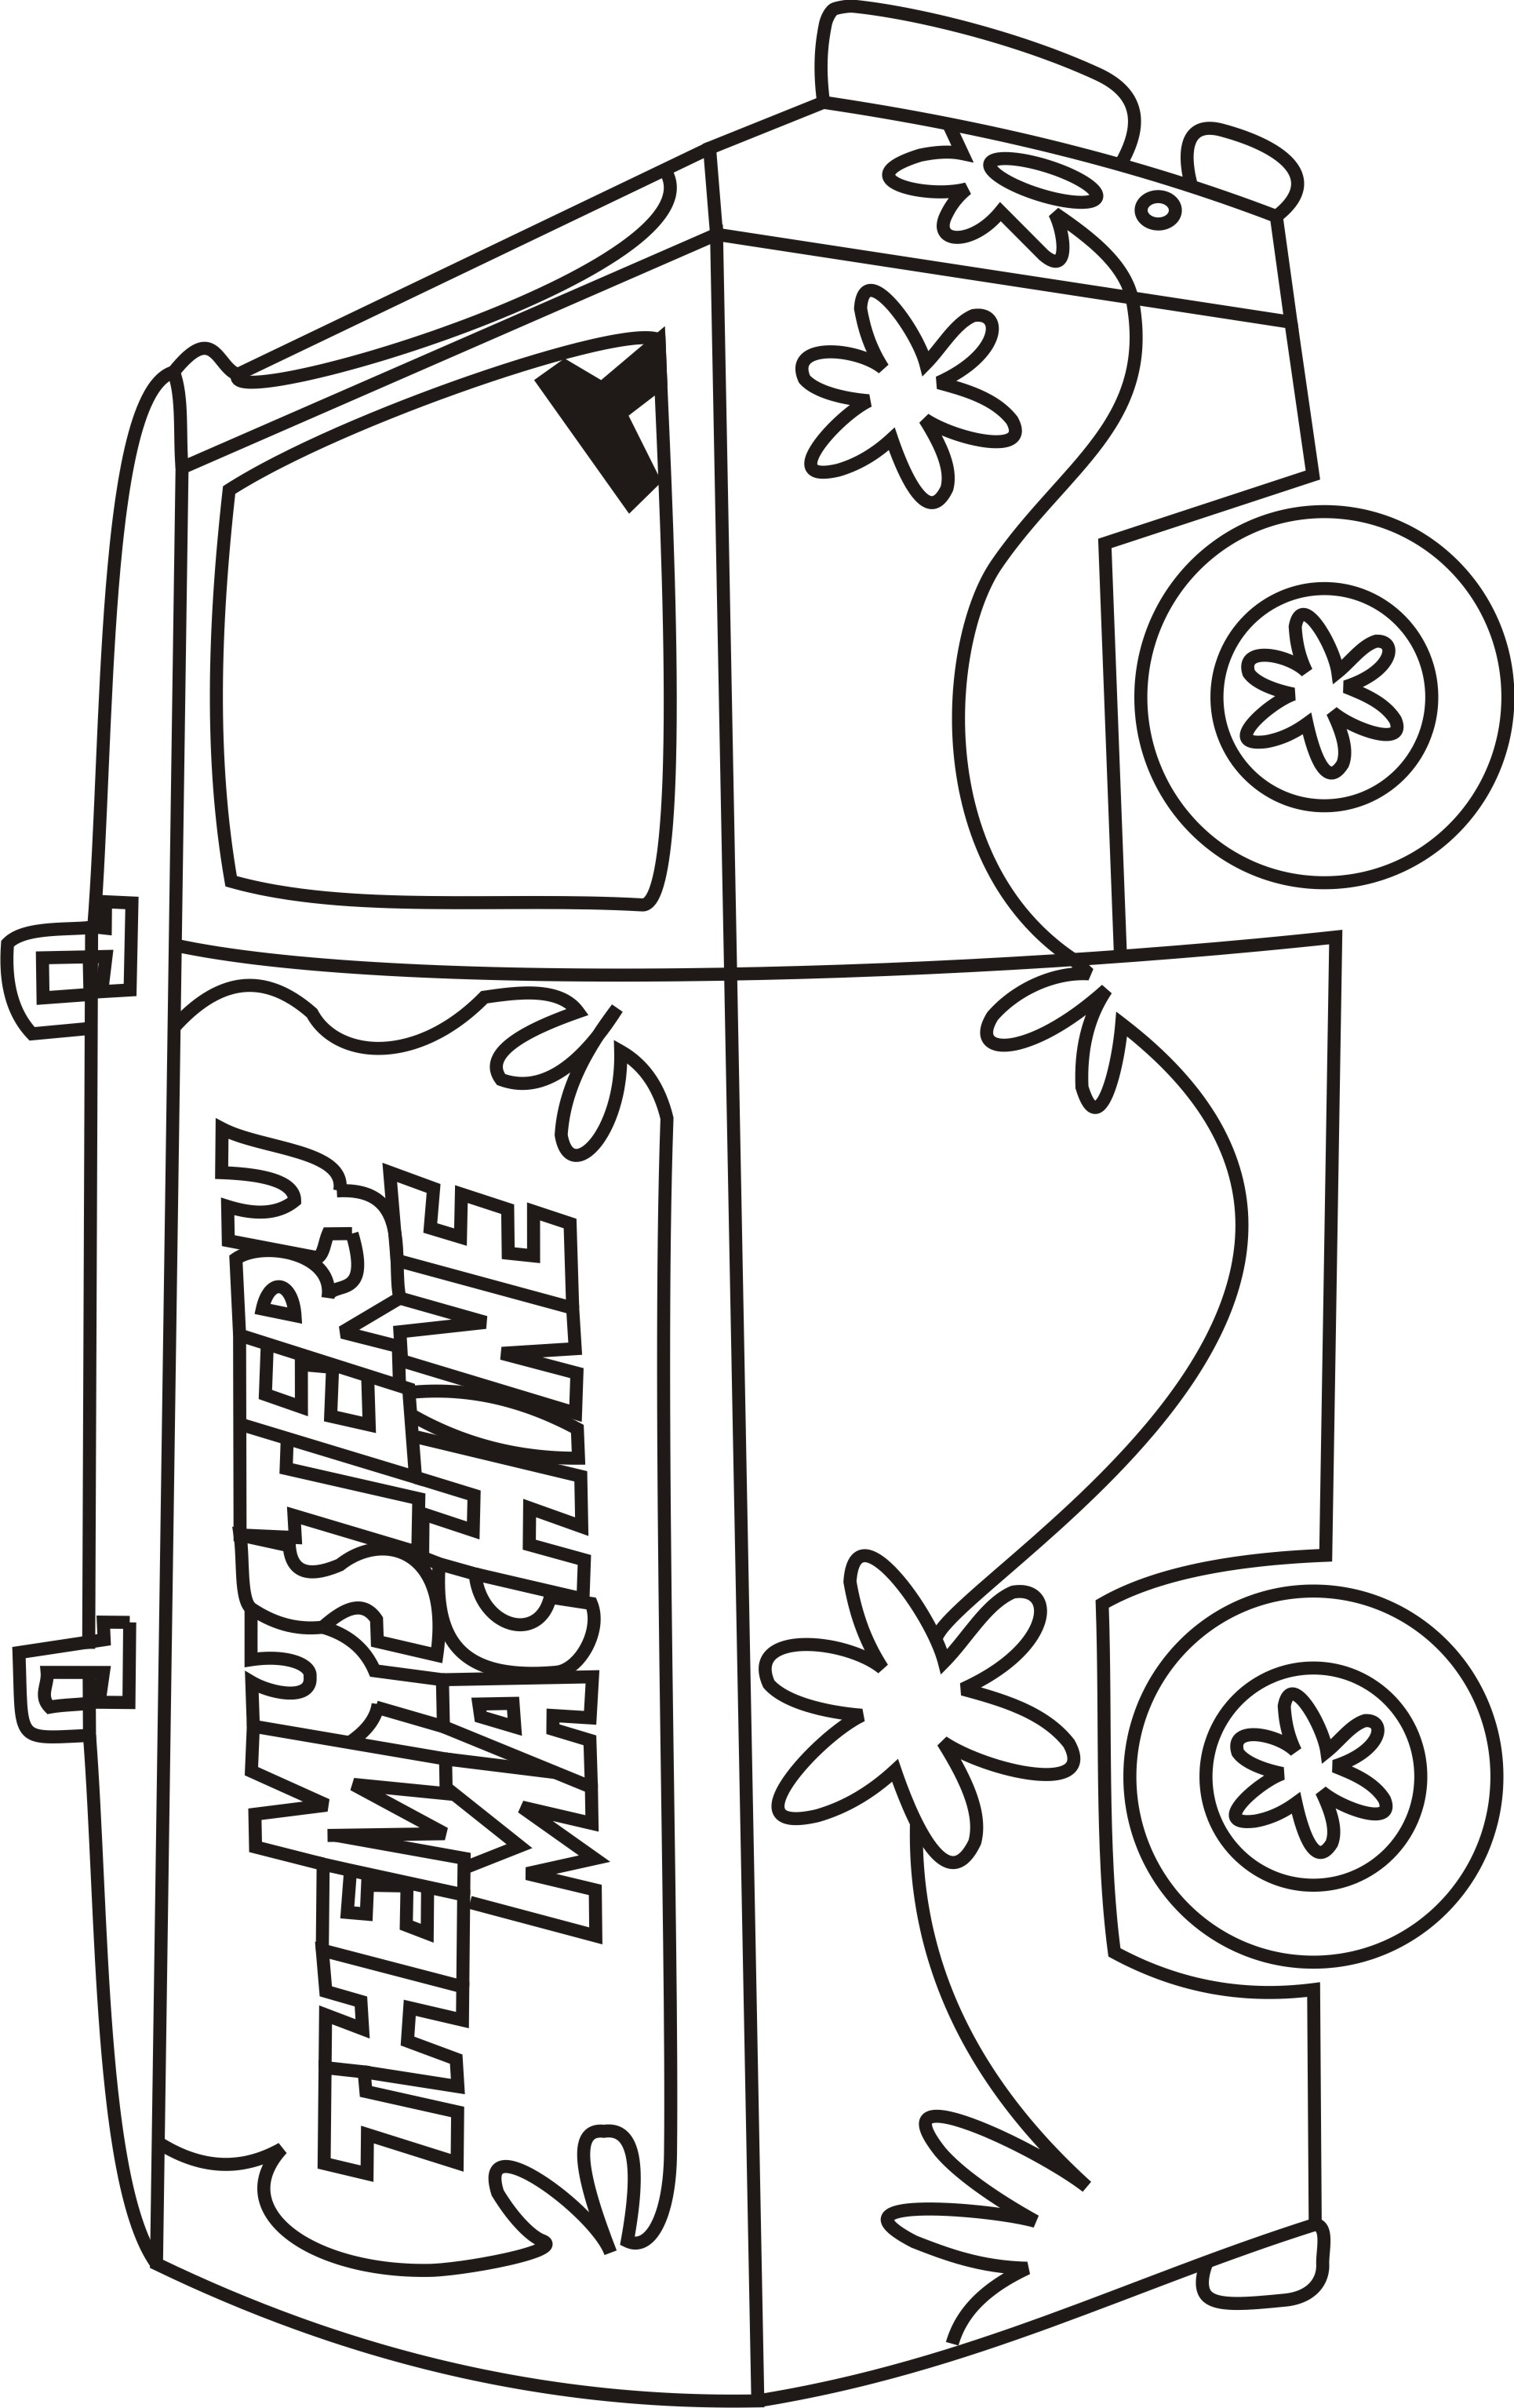 Mystery coloring pages collection free coloring sheets for Mystery coloring pages